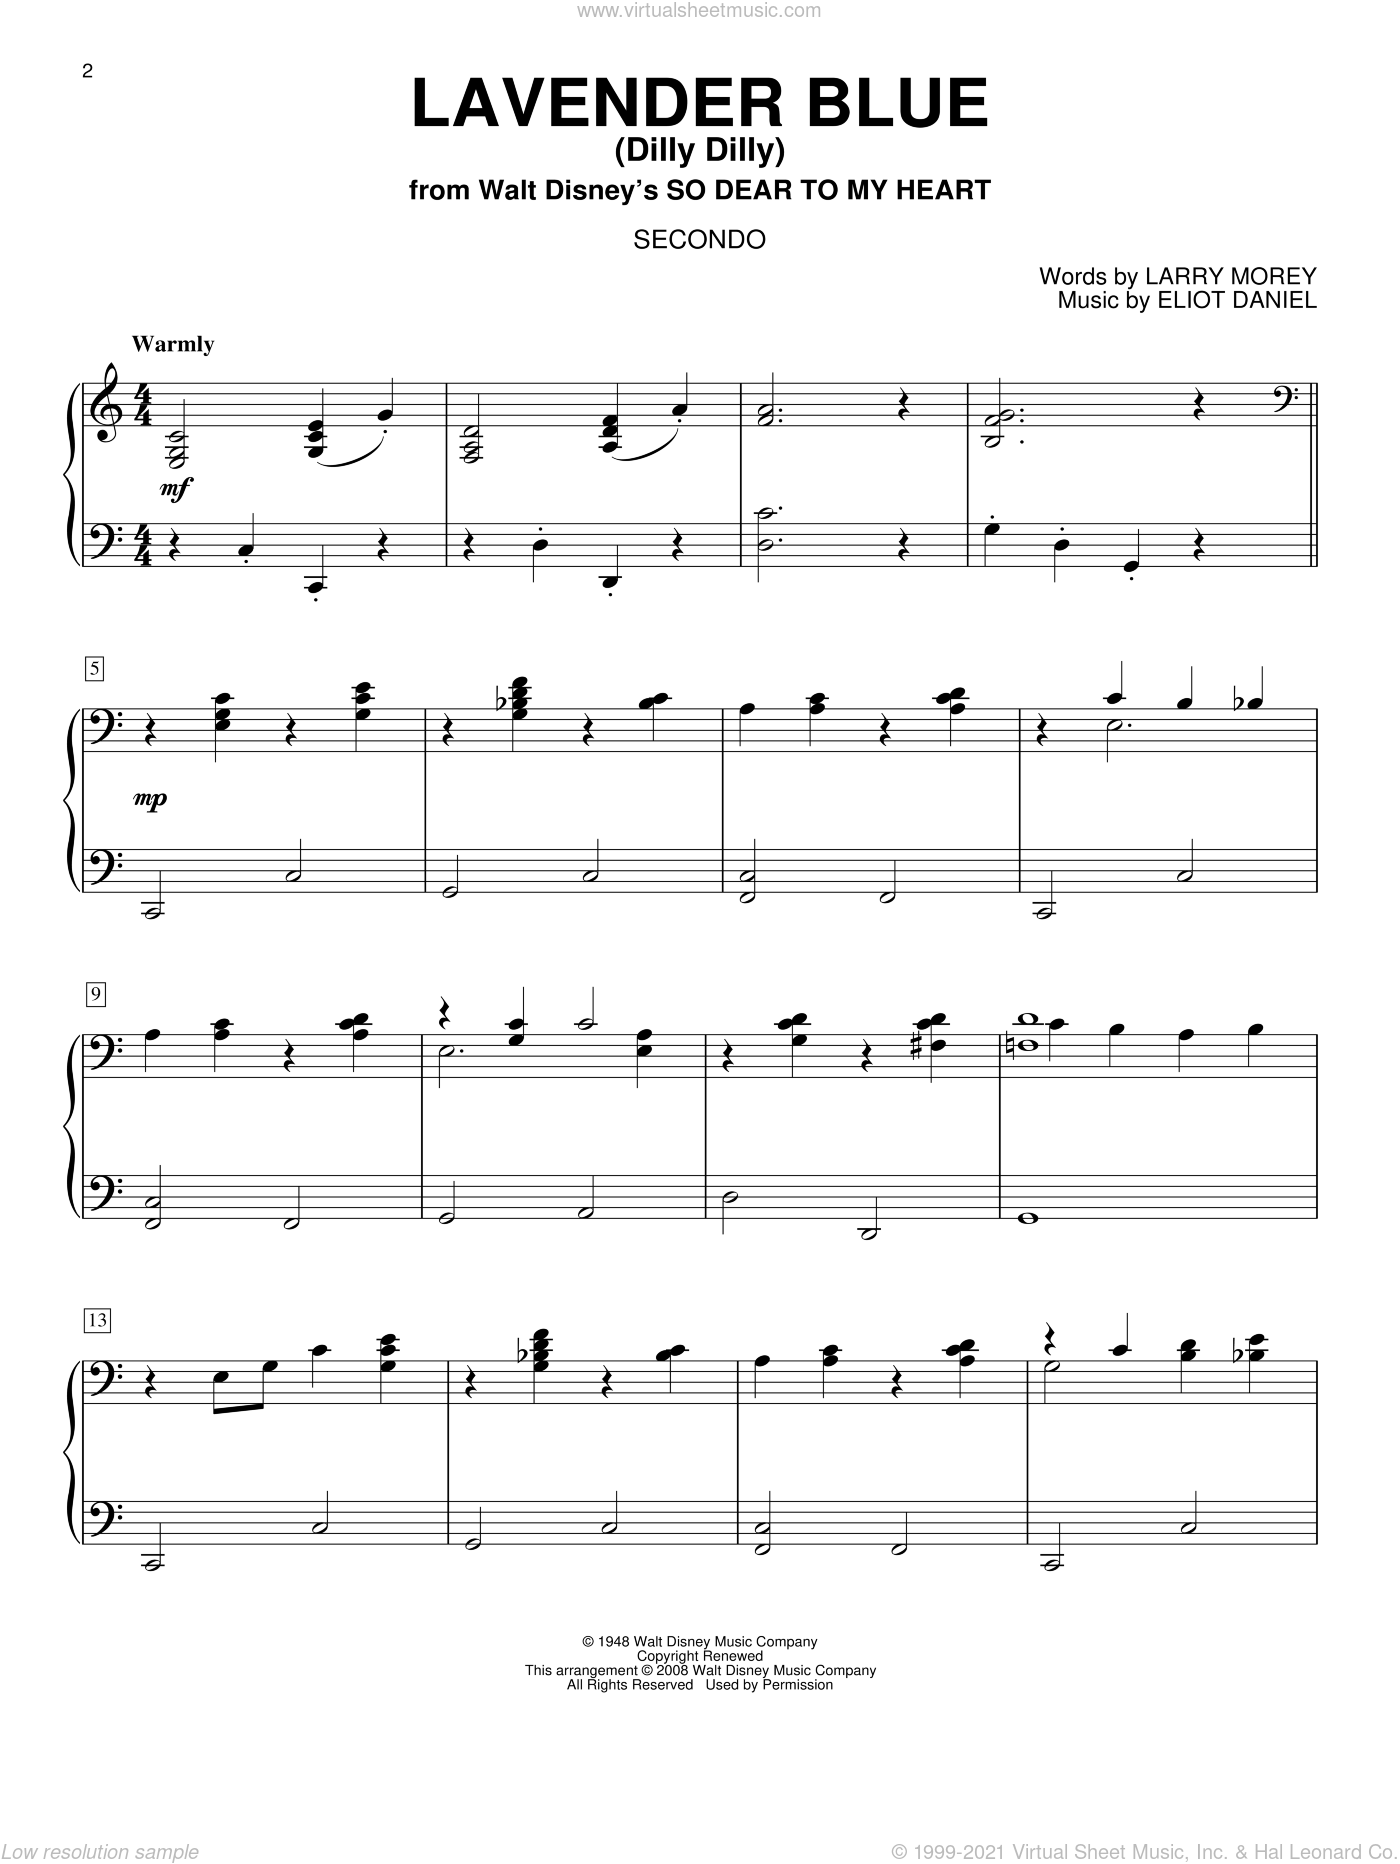 Lavender Blue (Dilly Dilly) sheet music for piano four hands (duets) by Larry Morey and Eliot Daniel. Score Image Preview.